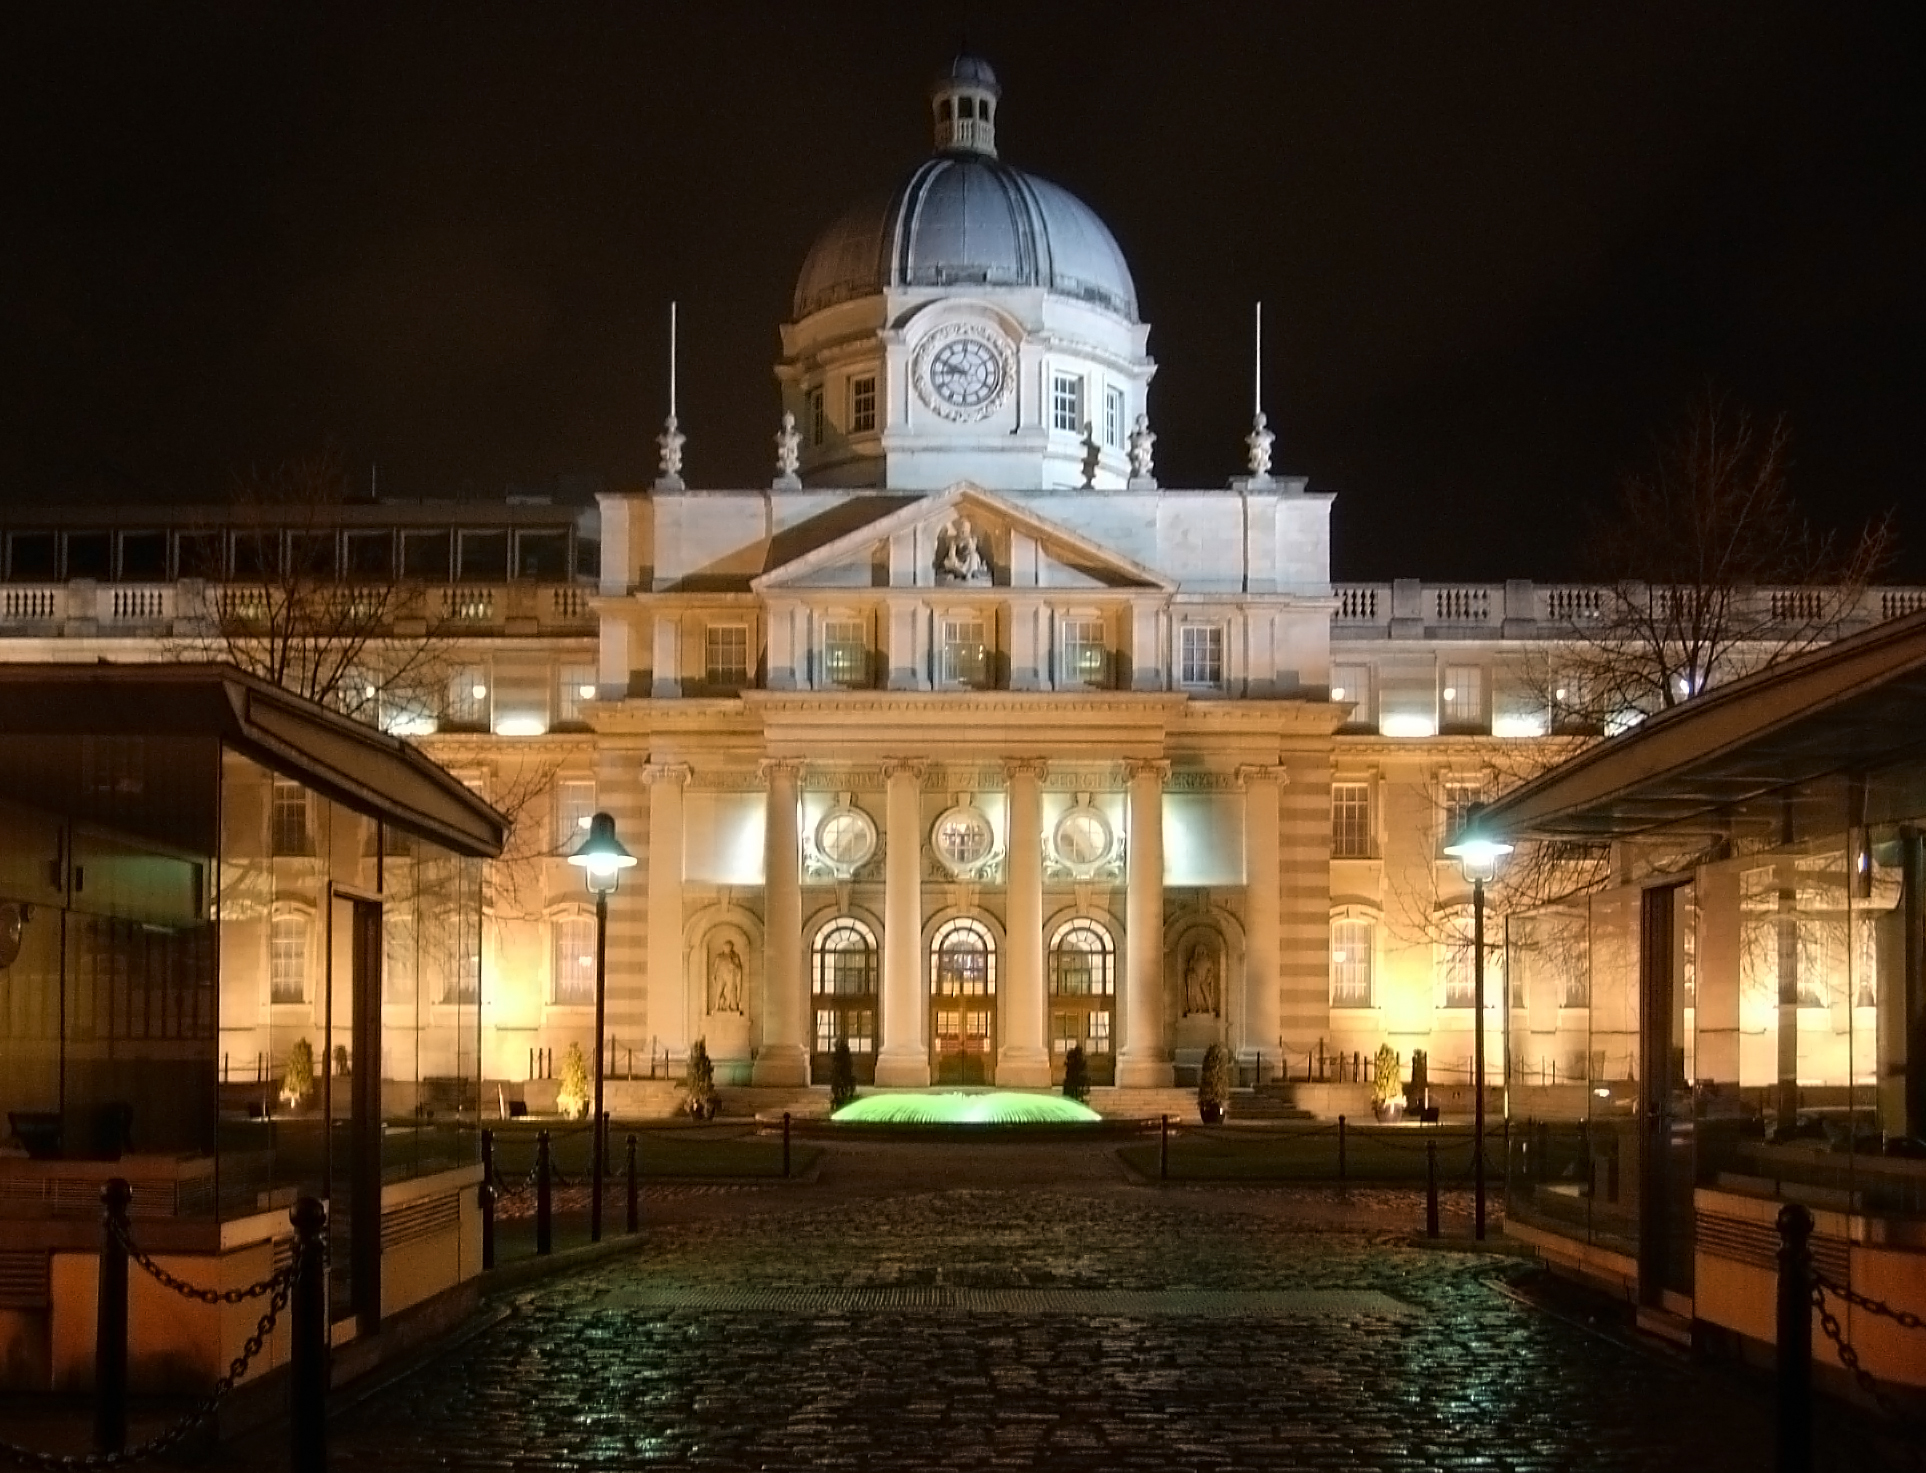 Irish Defence Forces - Secure Ireland's Government Buildings